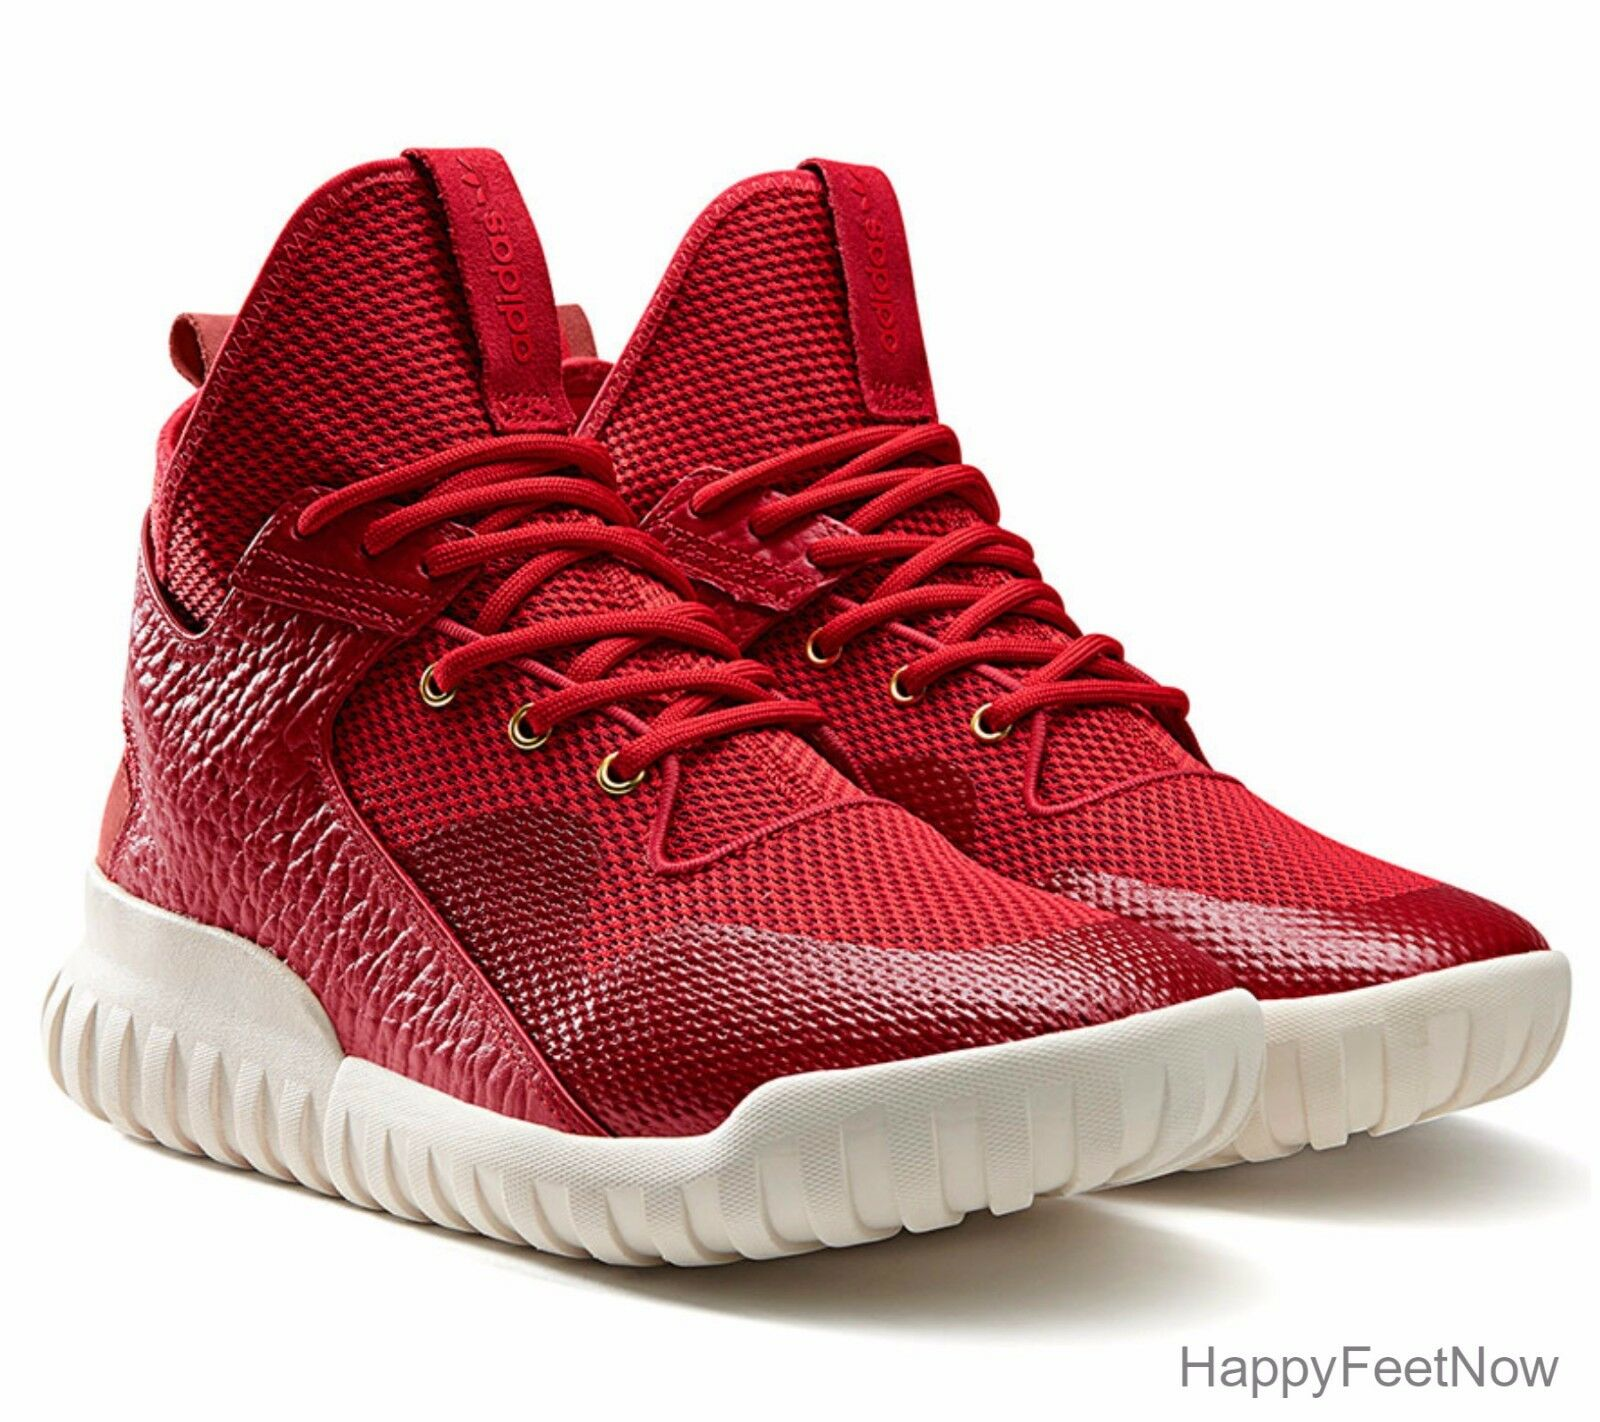 e68c134c3a701 ADIDAS ORIGINALS TUBULAR X CHINESE NEW YEAR MEN S SHOES SIZE US 12 RED  AQ2548 30%